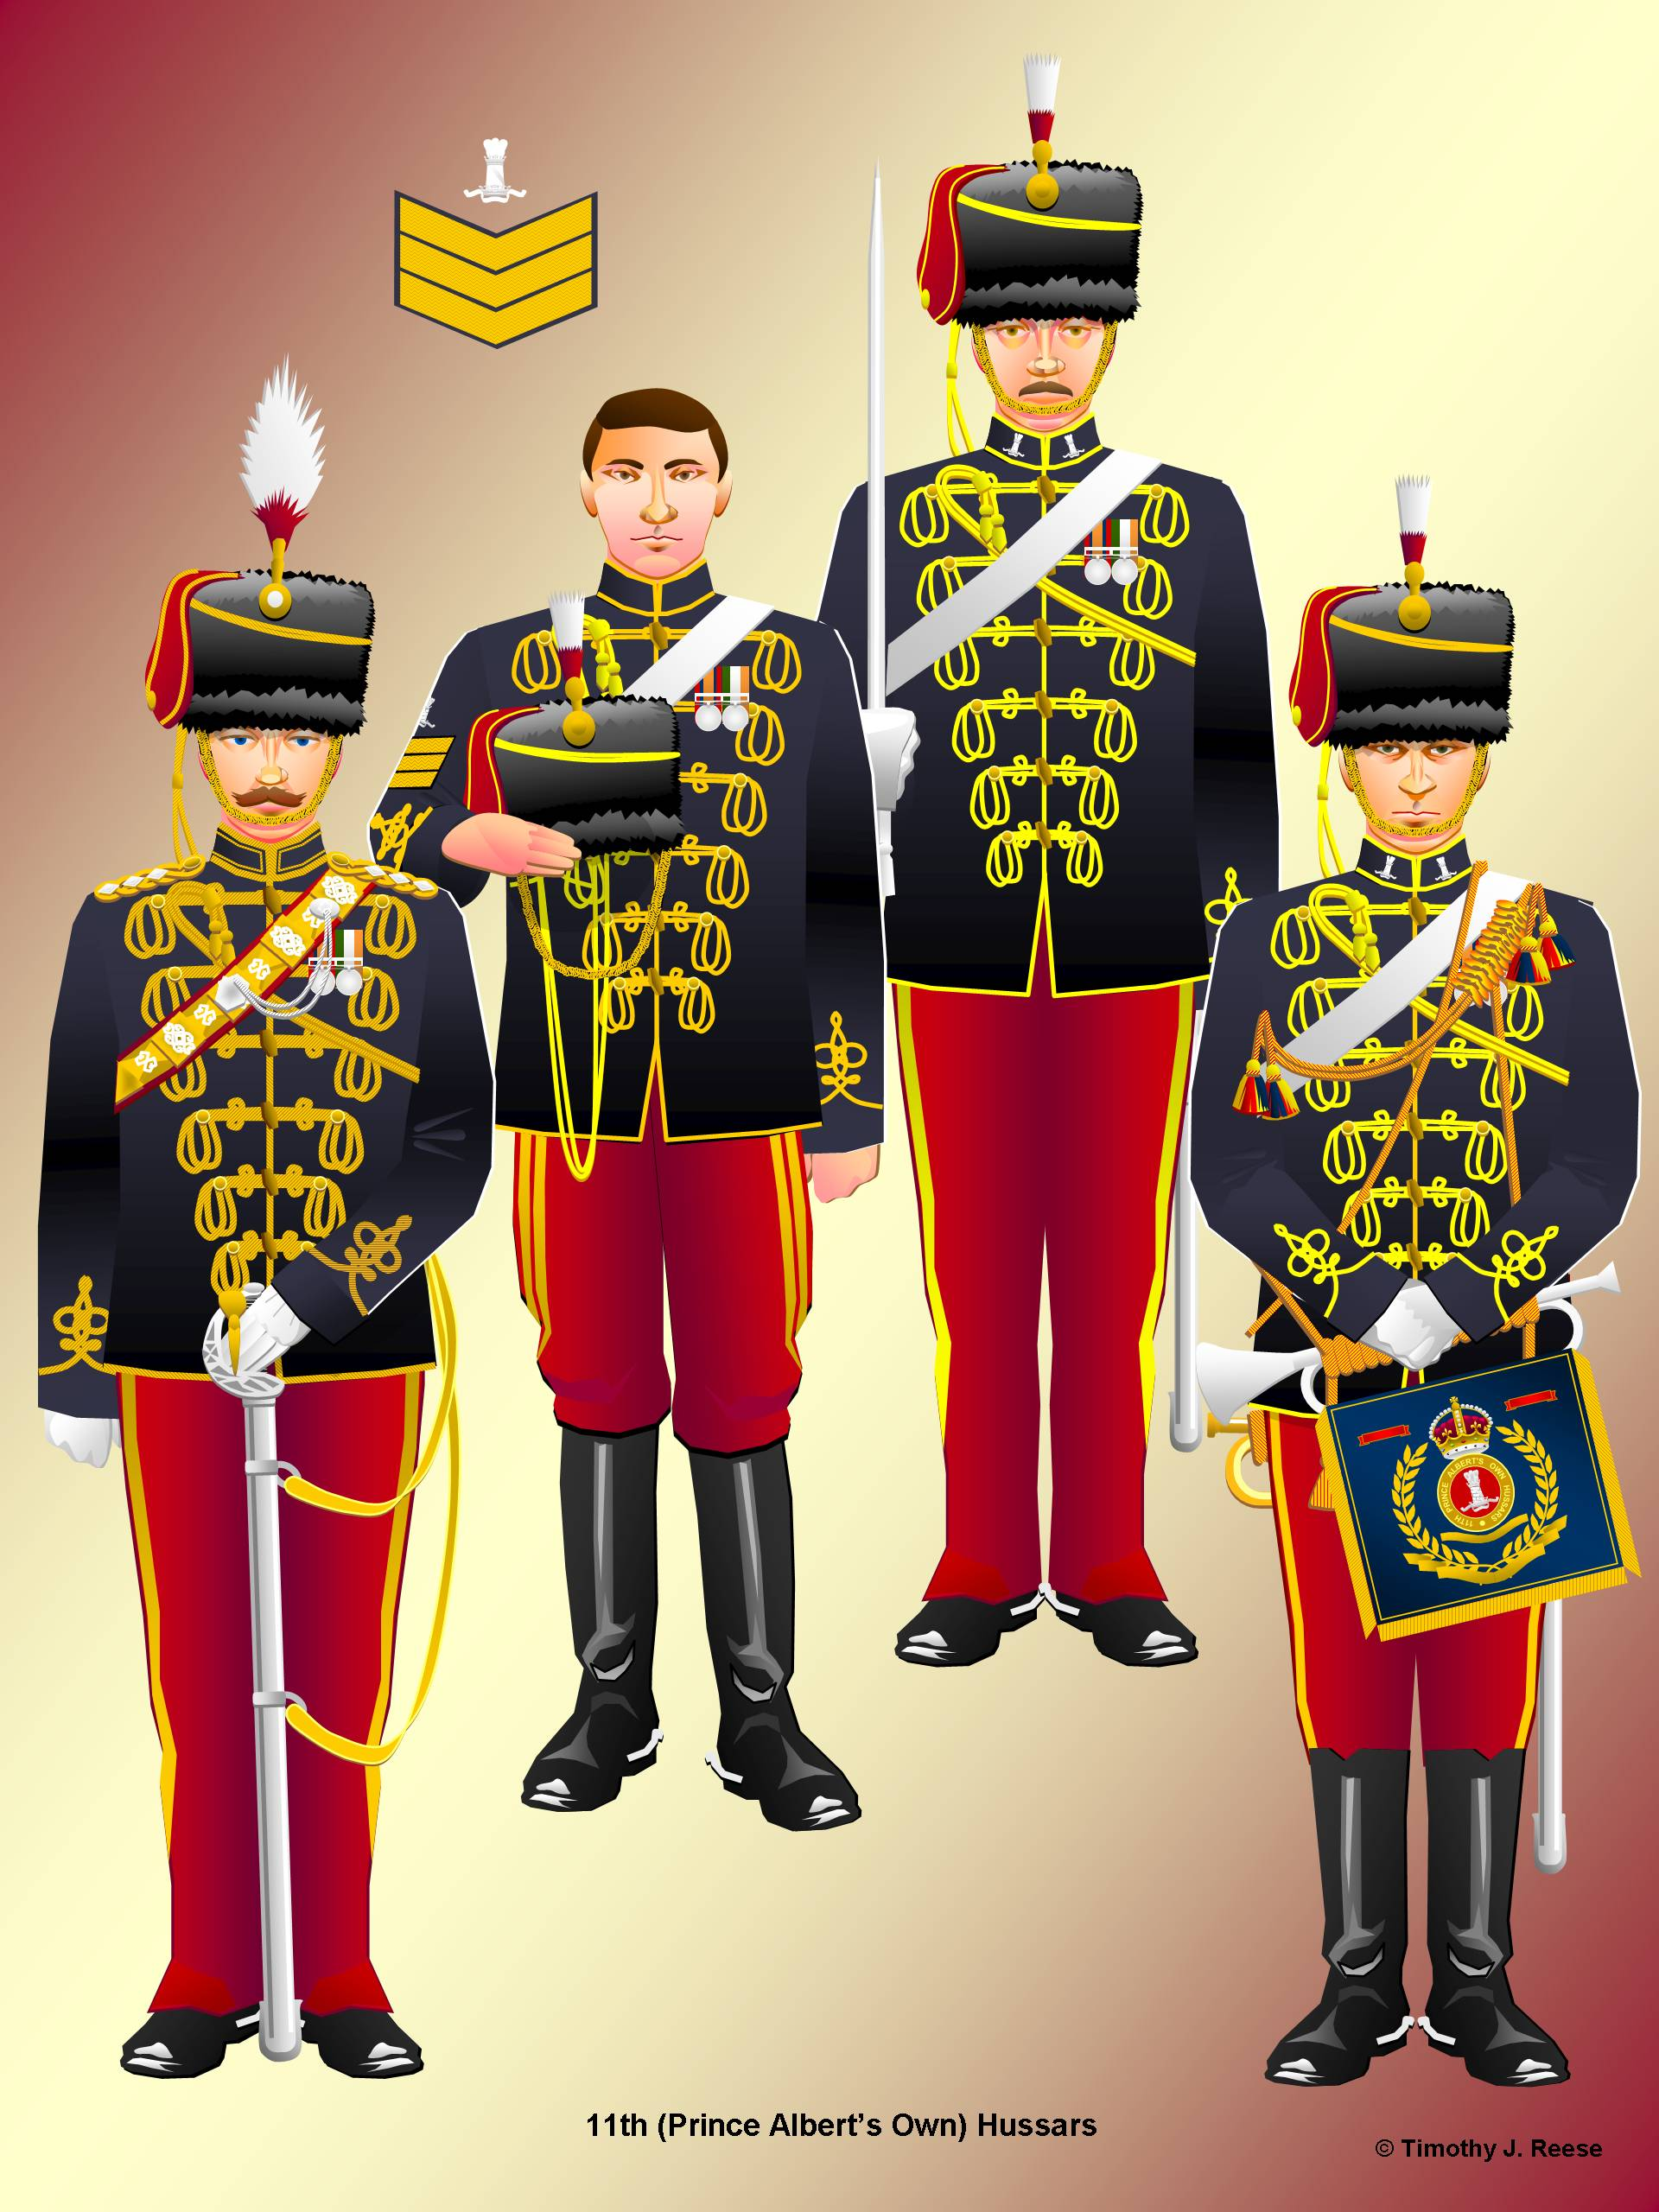 uniform dating deals Uniform dating discount code 2018 go to uniformdatingcom total 10 active uniformdatingcom promotion codes & deals are listed and the latest one is updated on april 12, 2018 0 coupons and 10 deals which offer up to extra discount, make sure to use one of them when you're shopping for uniformdatingcom dealscove promise.